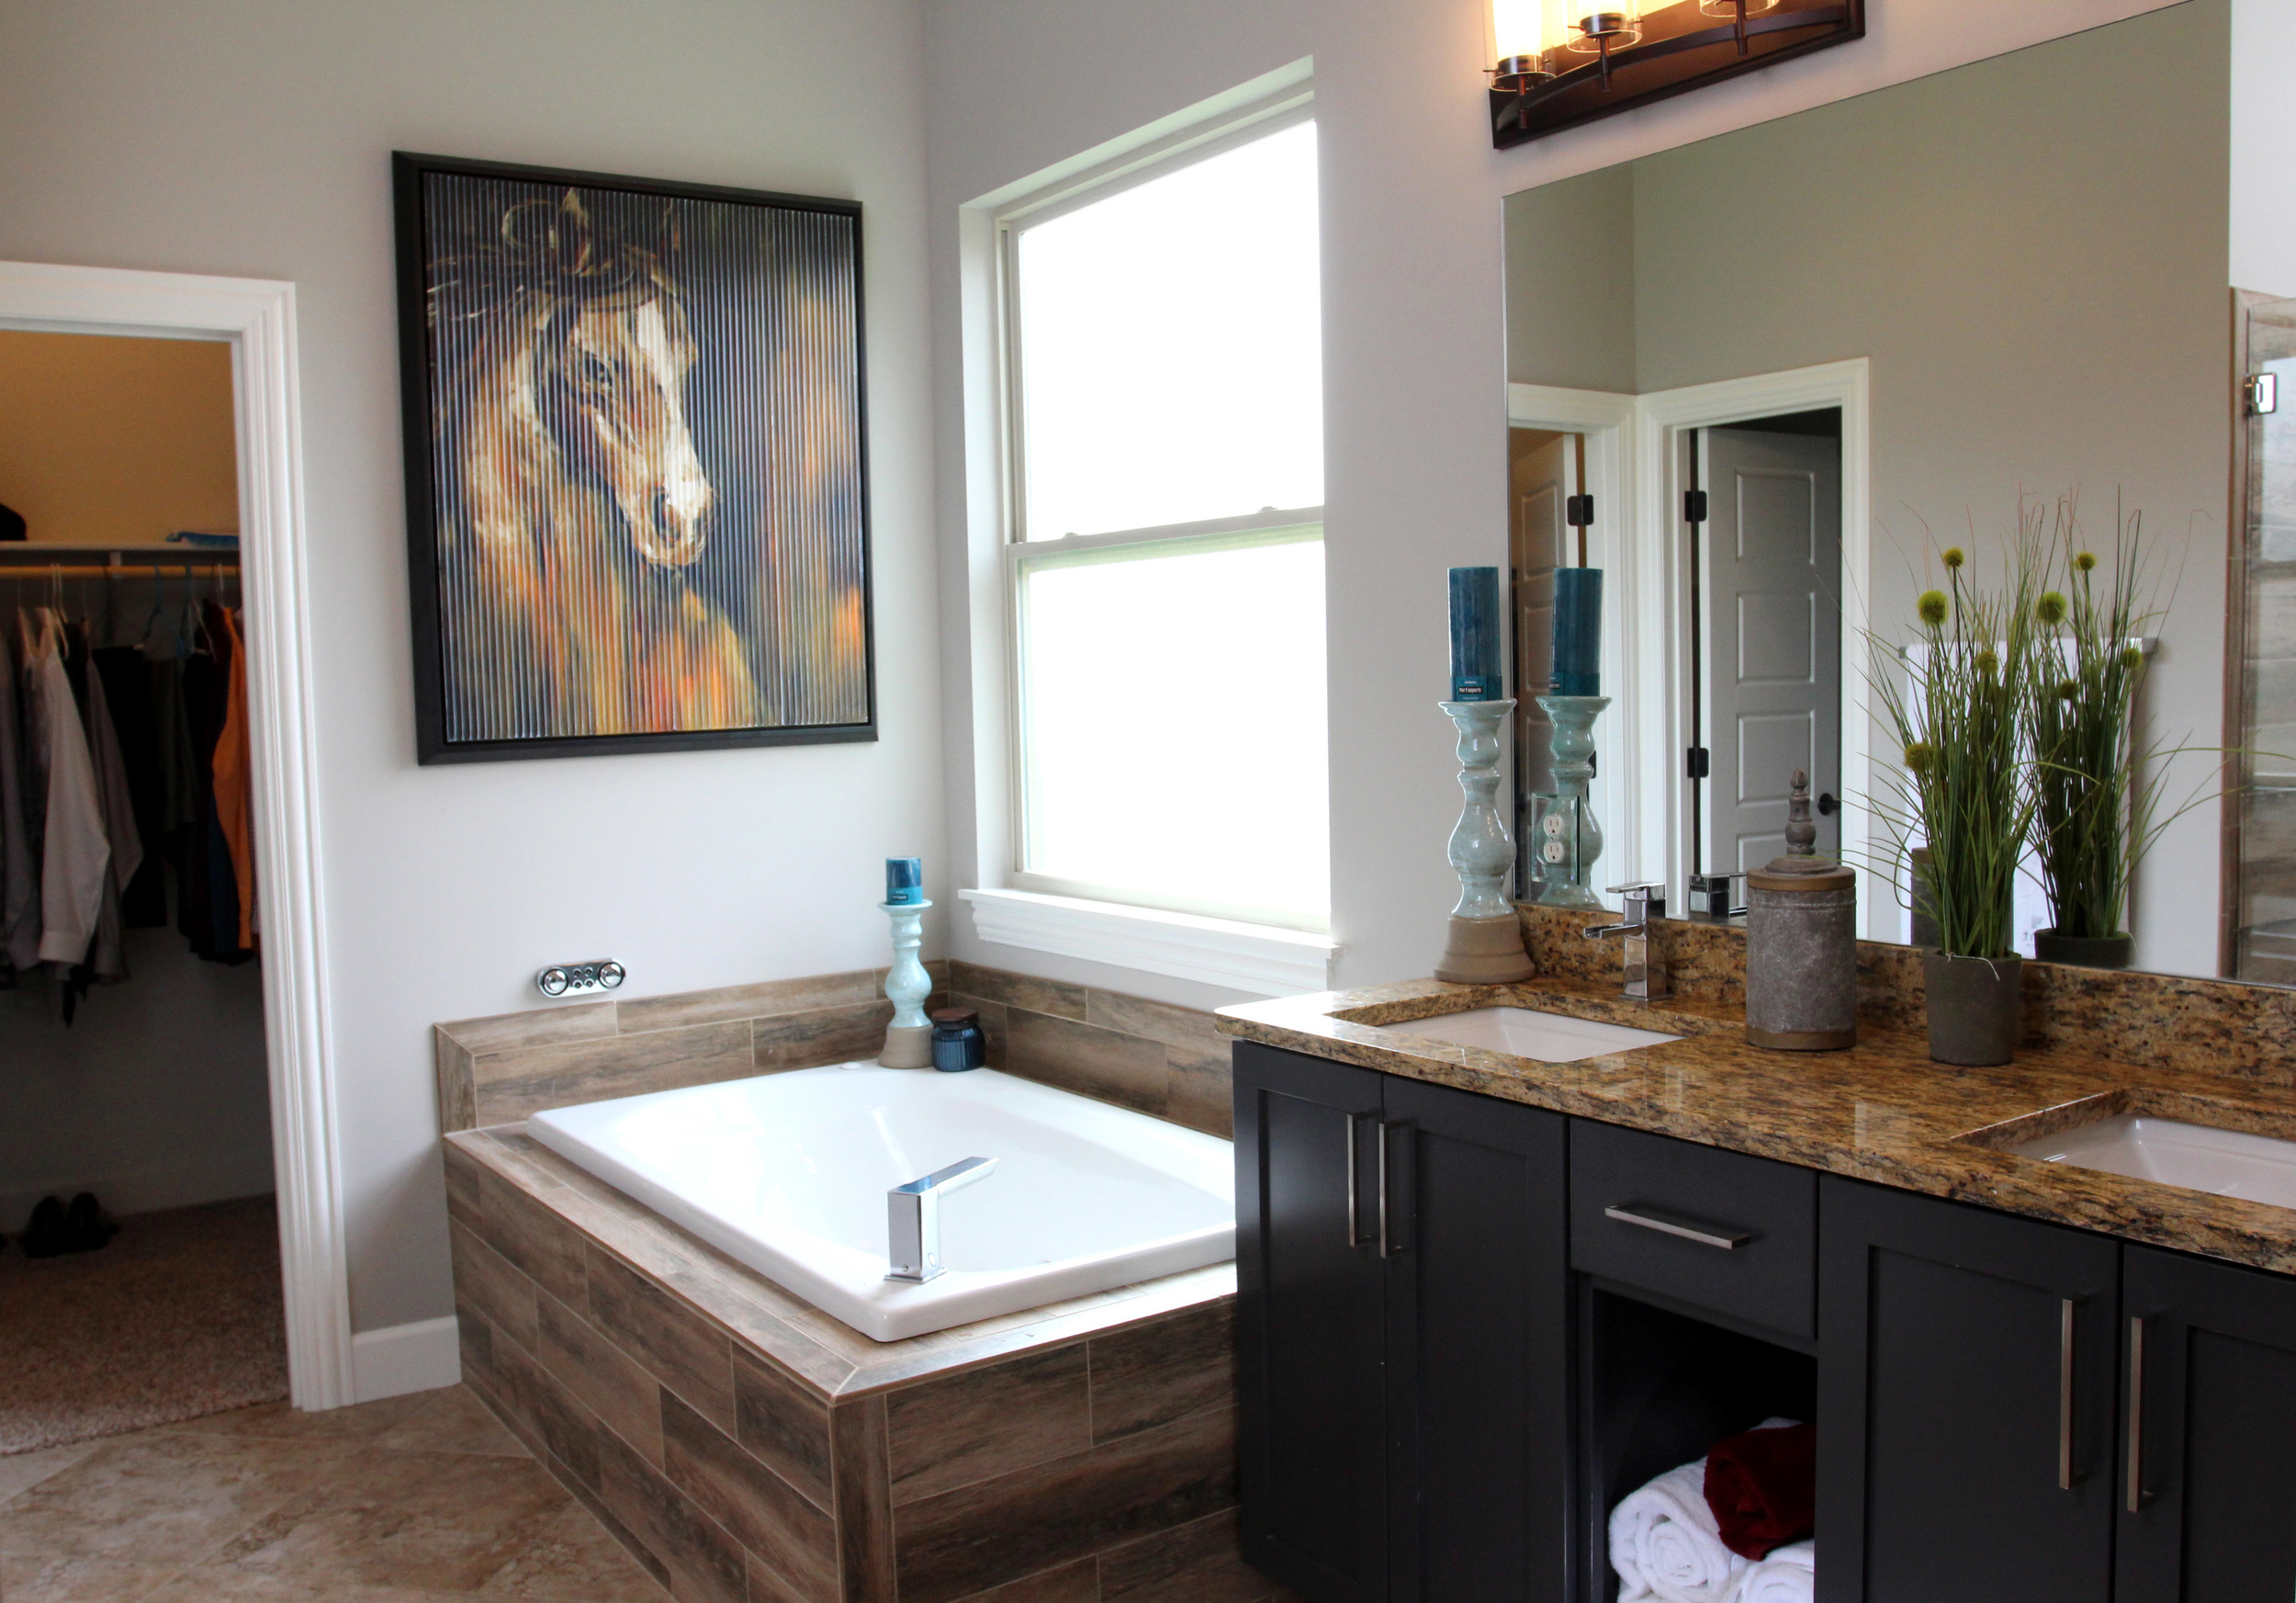 chesterfield-with-game-new-home-gallery-columbia-mo-girard-homes